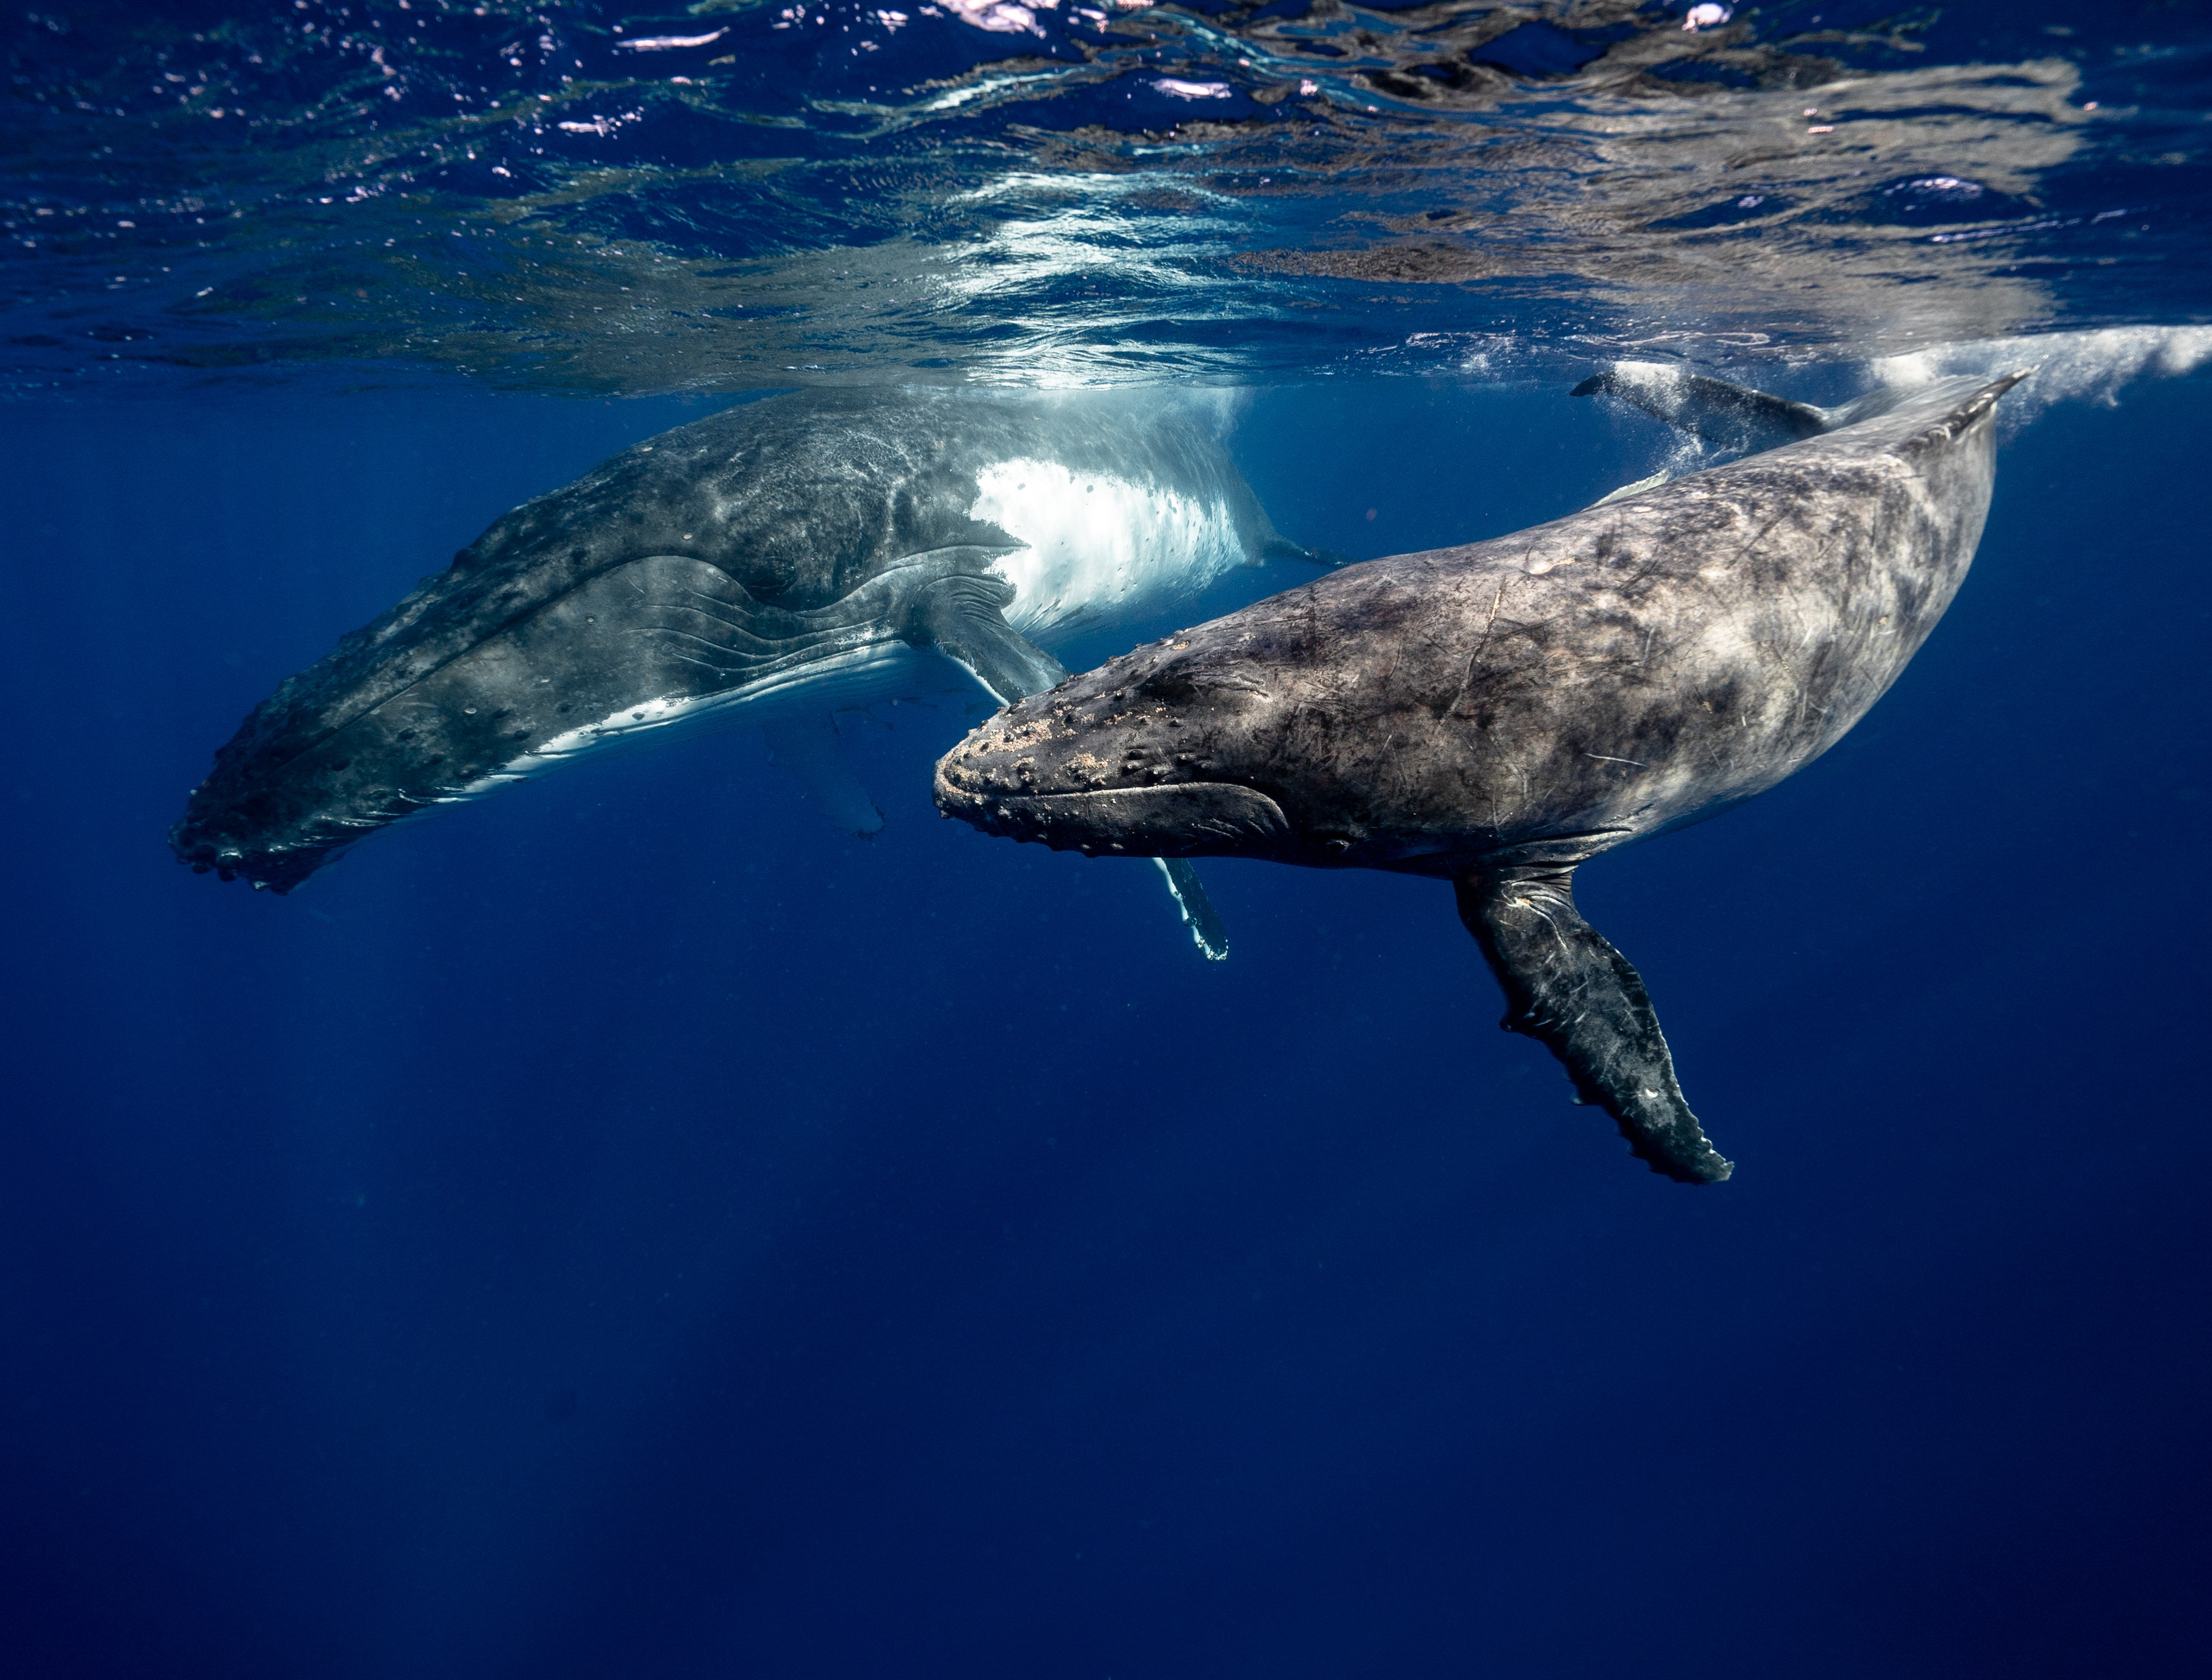 Whales swimming in the ocean